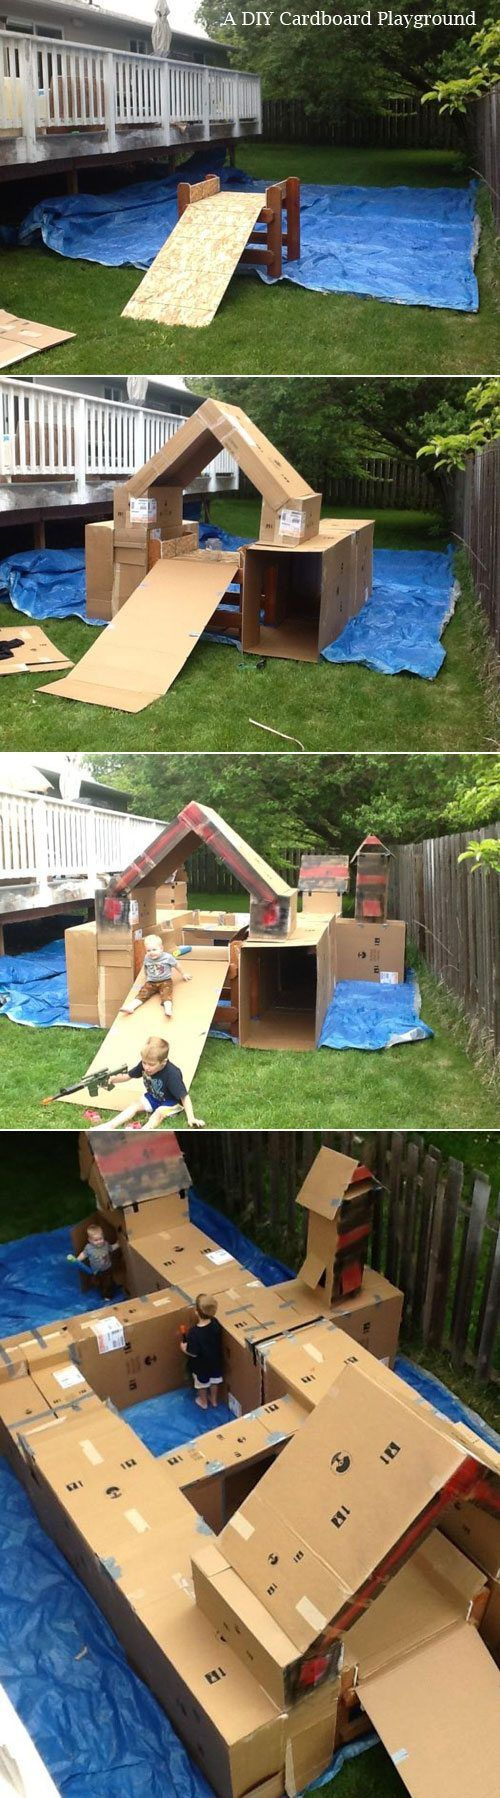 159 best repurposed materials playscapes images on pinterest